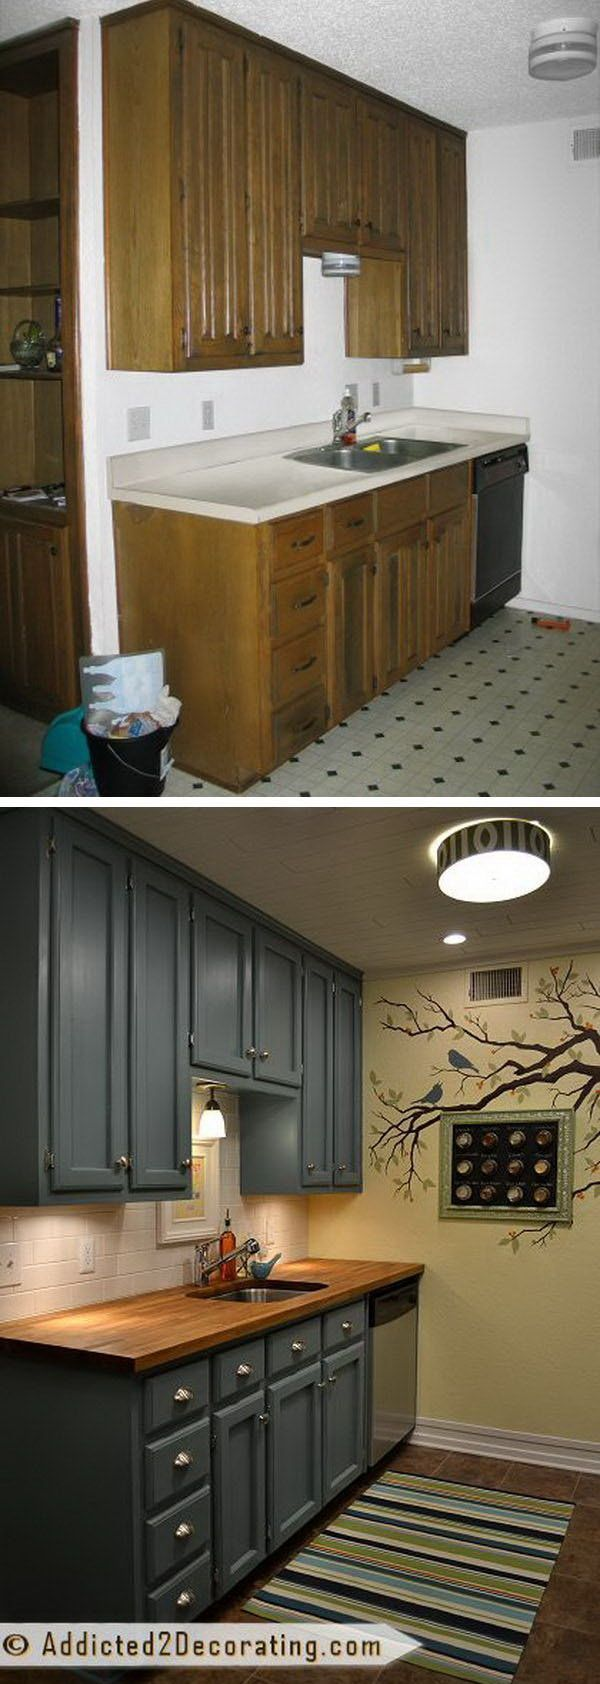 budget kitchen remodel Before and After 25 Budget Friendly Kitchen Makeover Ideas